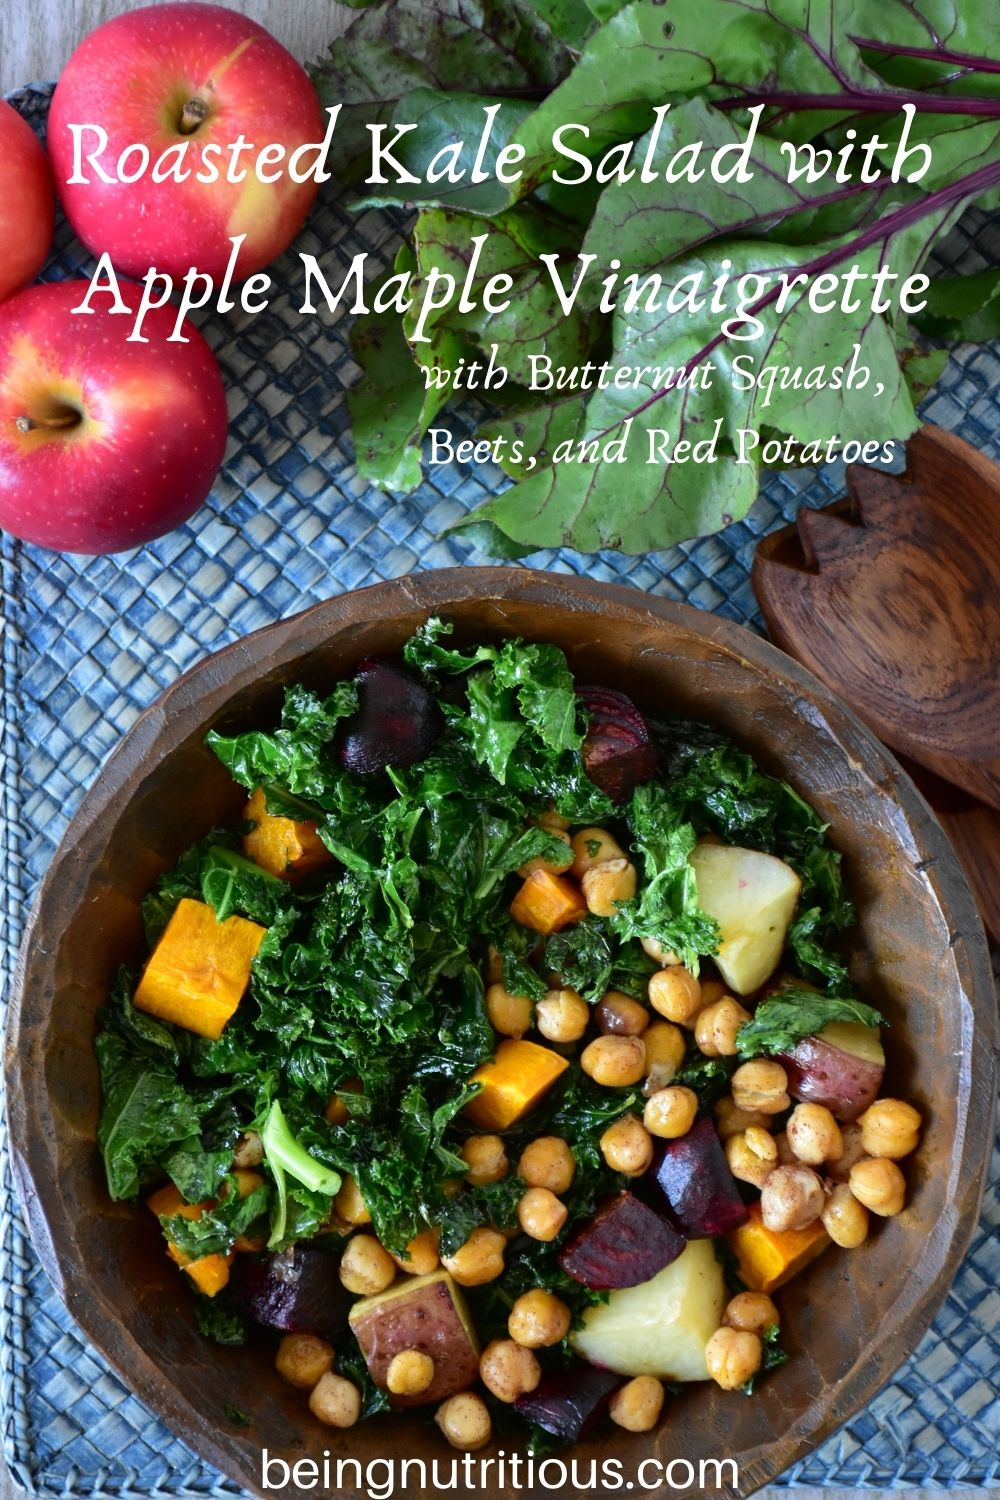 Overhead shot of kale salad in a wooden bowl. Text overlay: Roasted Kale Salad with Apple Maple Vinaigrette, with butternut squash, beets, and red potatoes.